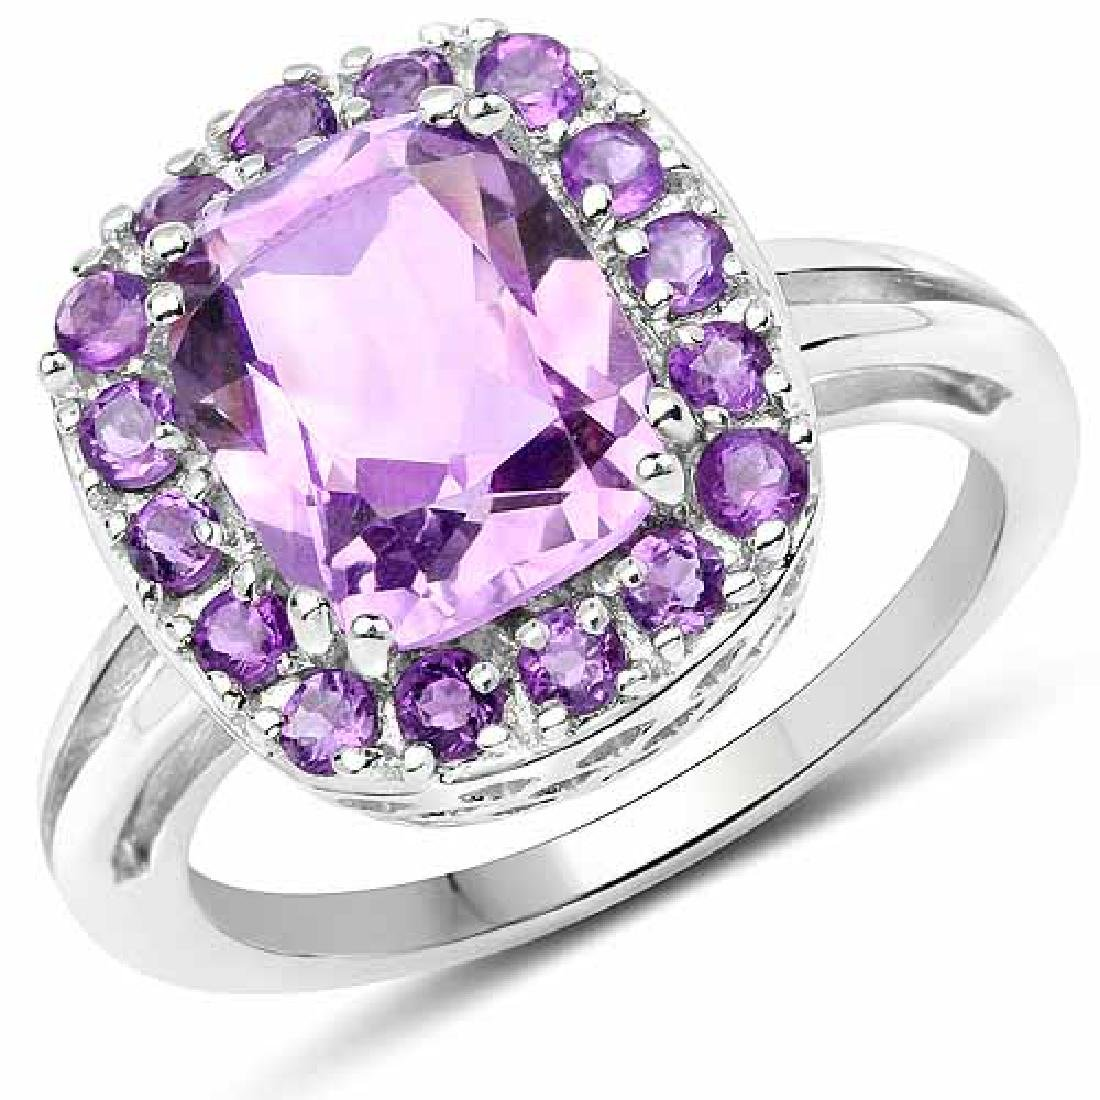 3.08 Carat Genuine Amethyst .925 Sterling Silver Ring